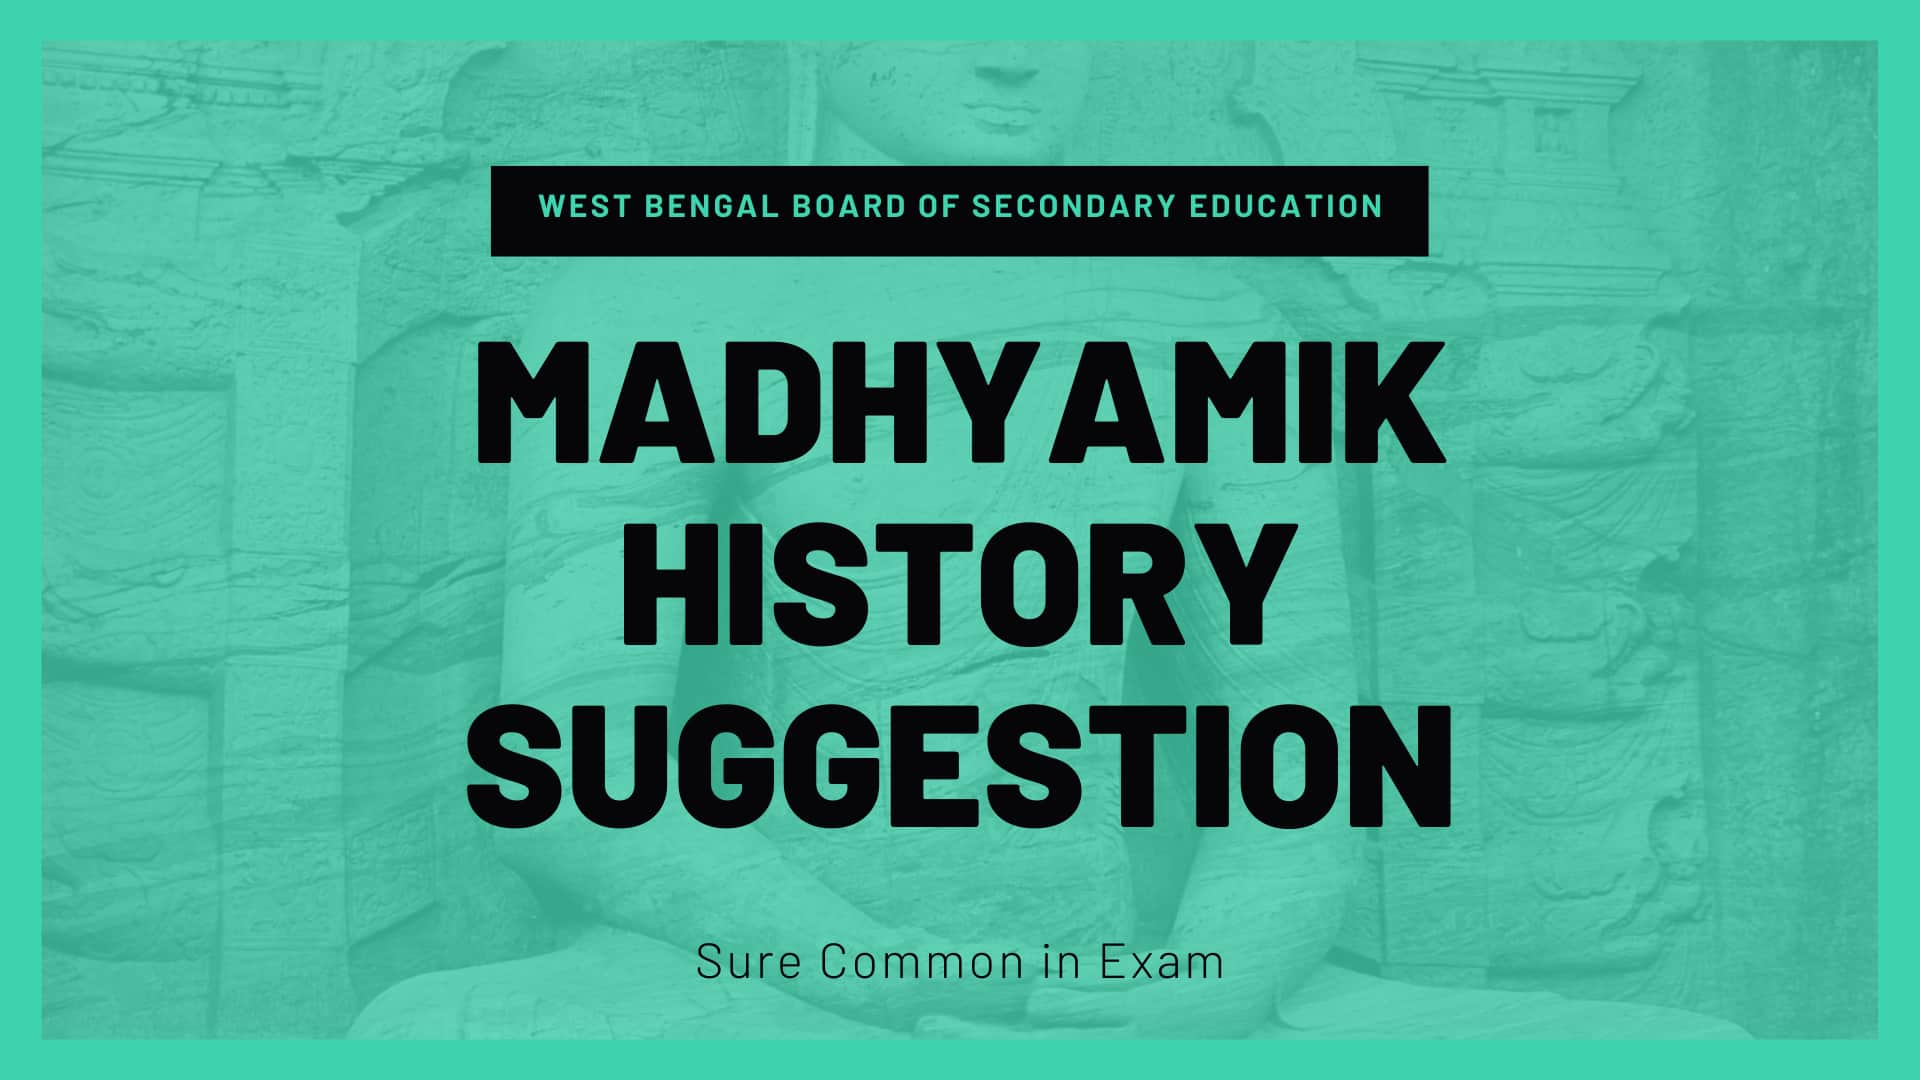 Madhyamik History Suggestion 2021 pdf download